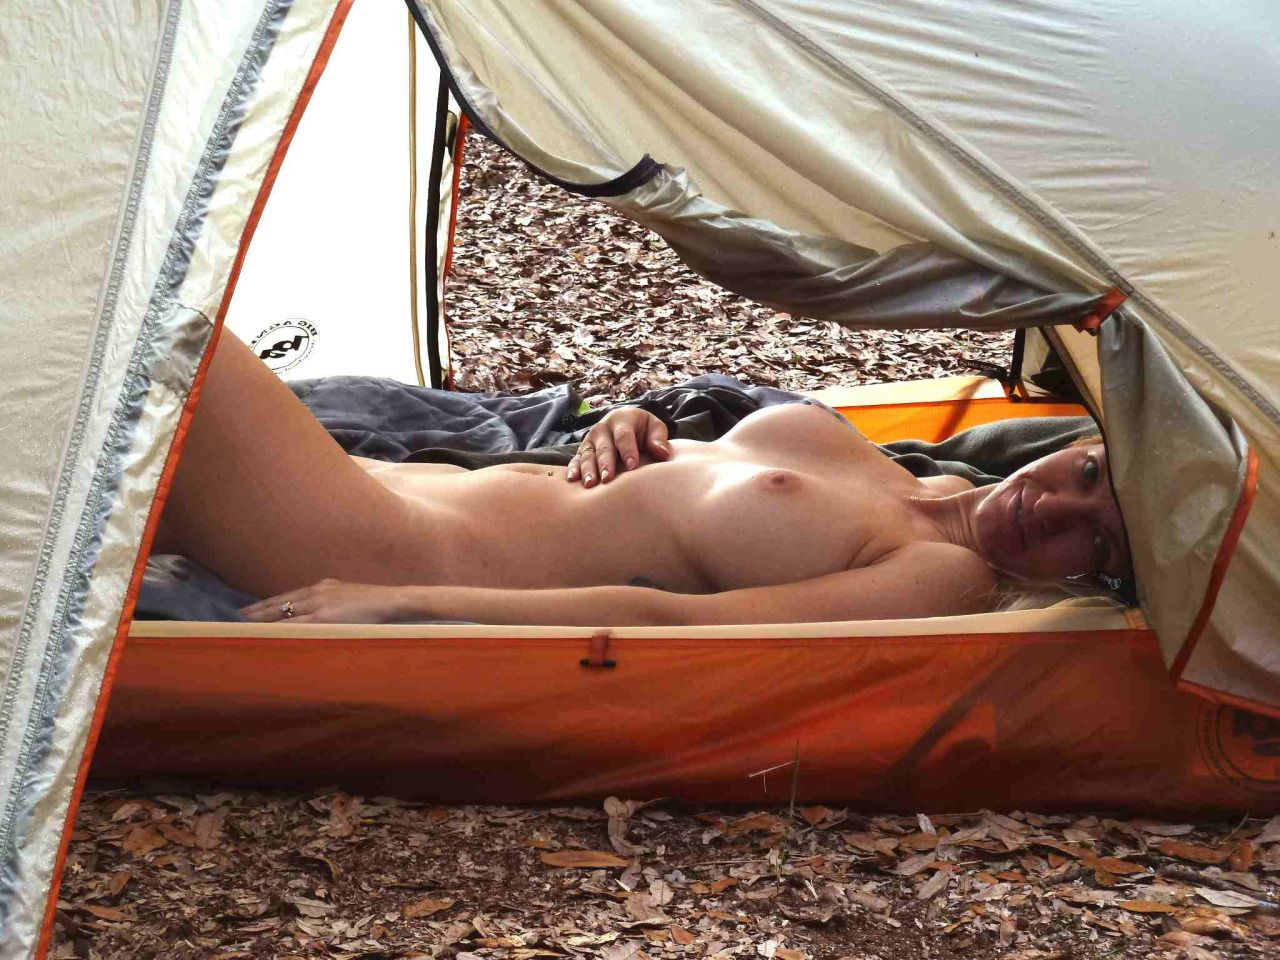 Tent girl nude — photo 10